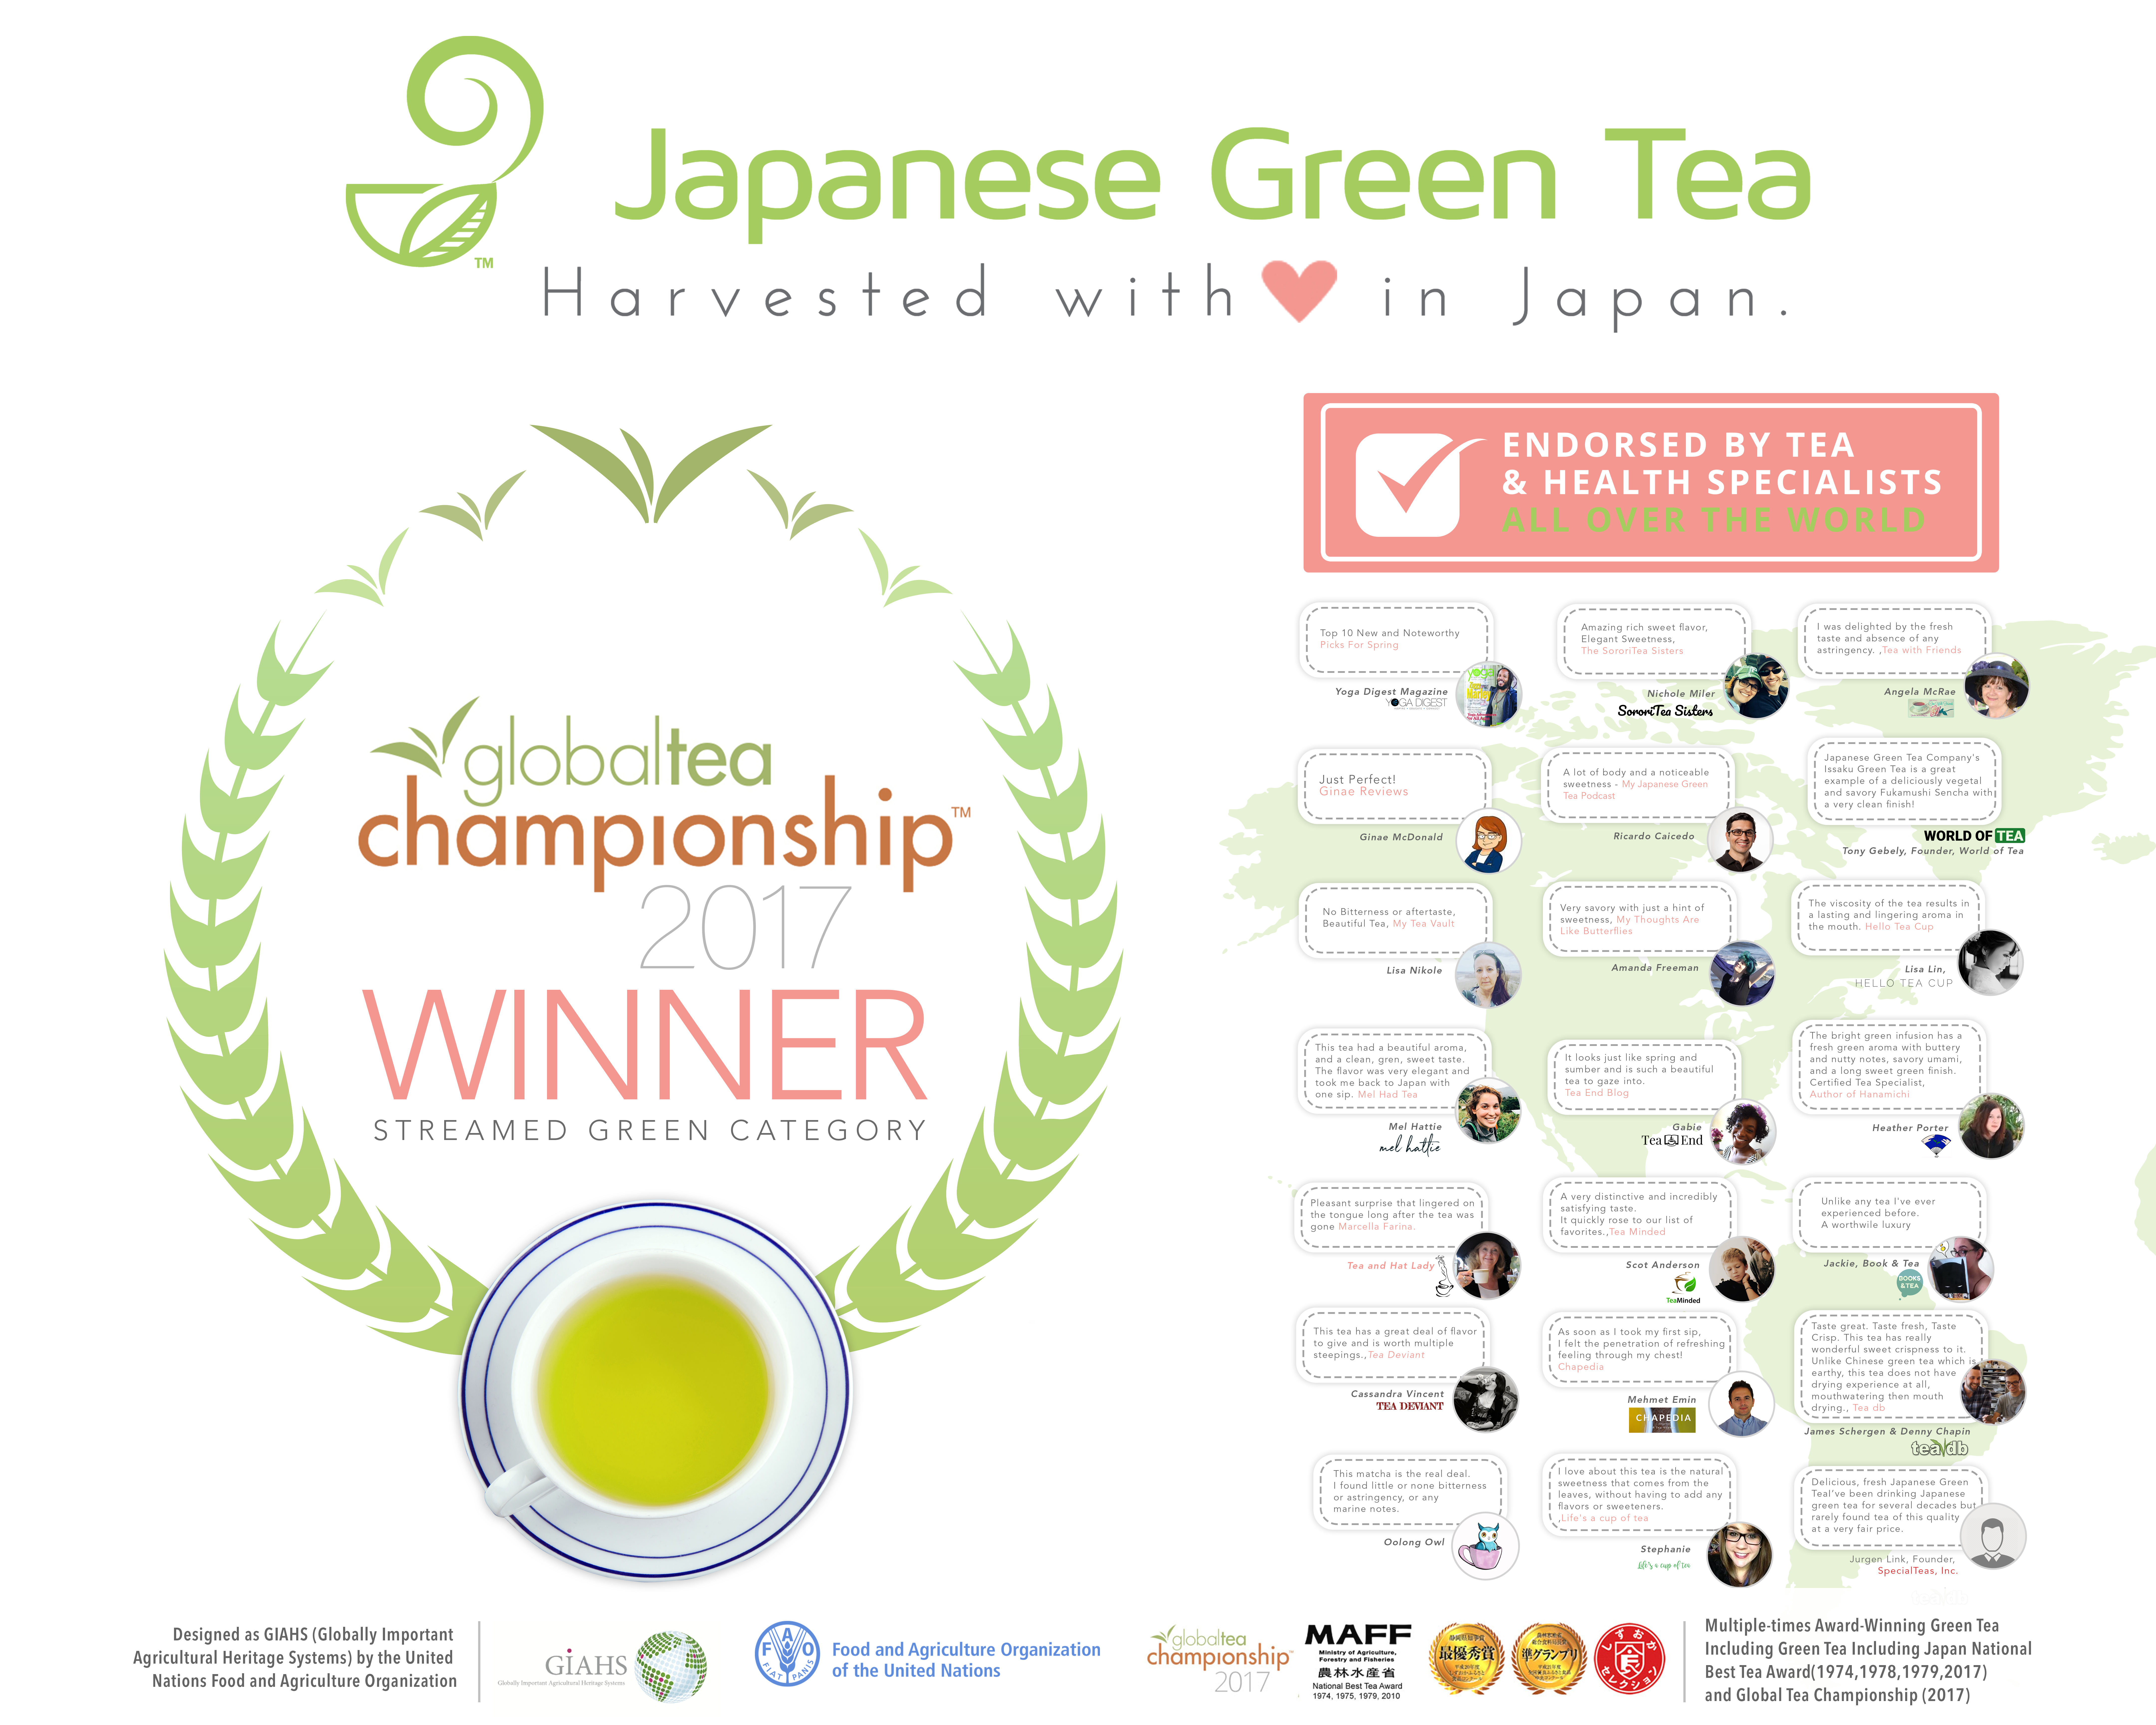 Trade Show Expo Booth Background Banner Design for Japanese Green Tea Company